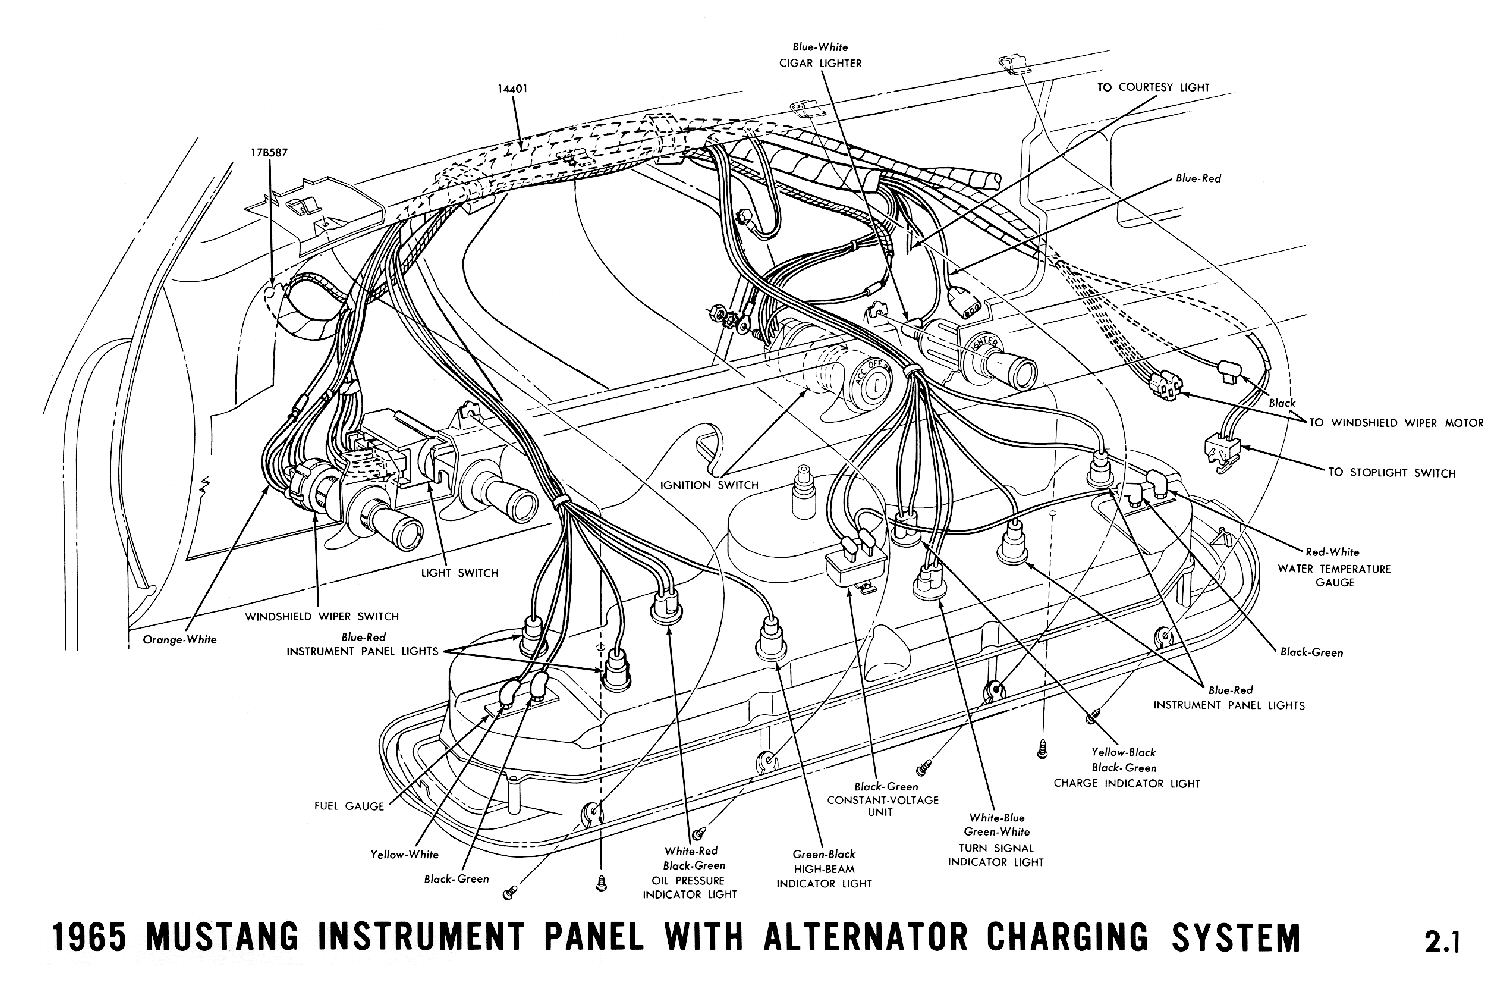 1965a 1965 mustang wiring diagrams average joe restoration 68 mustang headlight wiring diagram at readyjetset.co